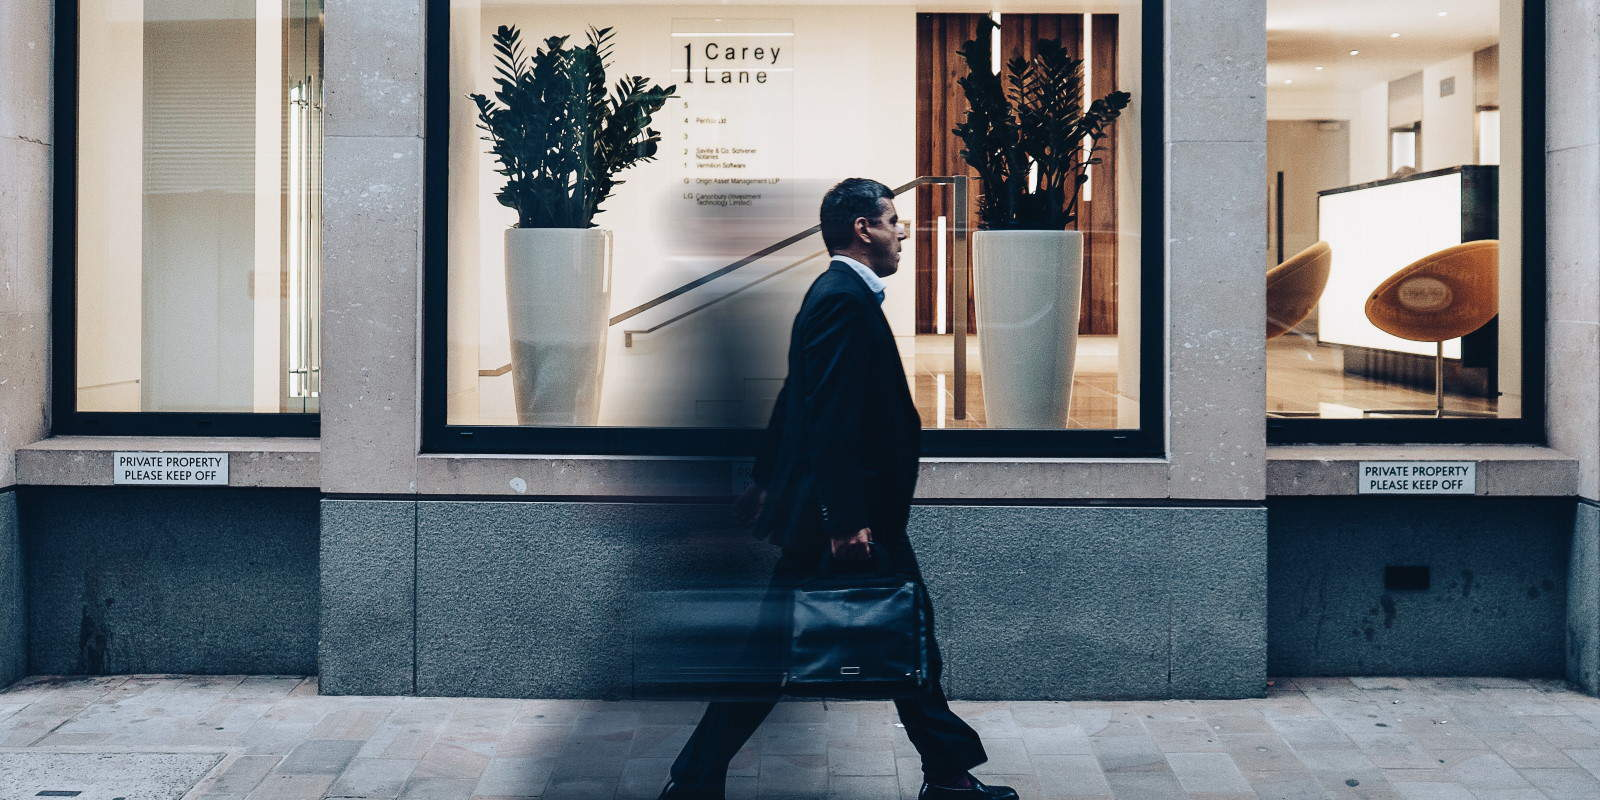 A businessman walking on the street past the windows of an office reception area